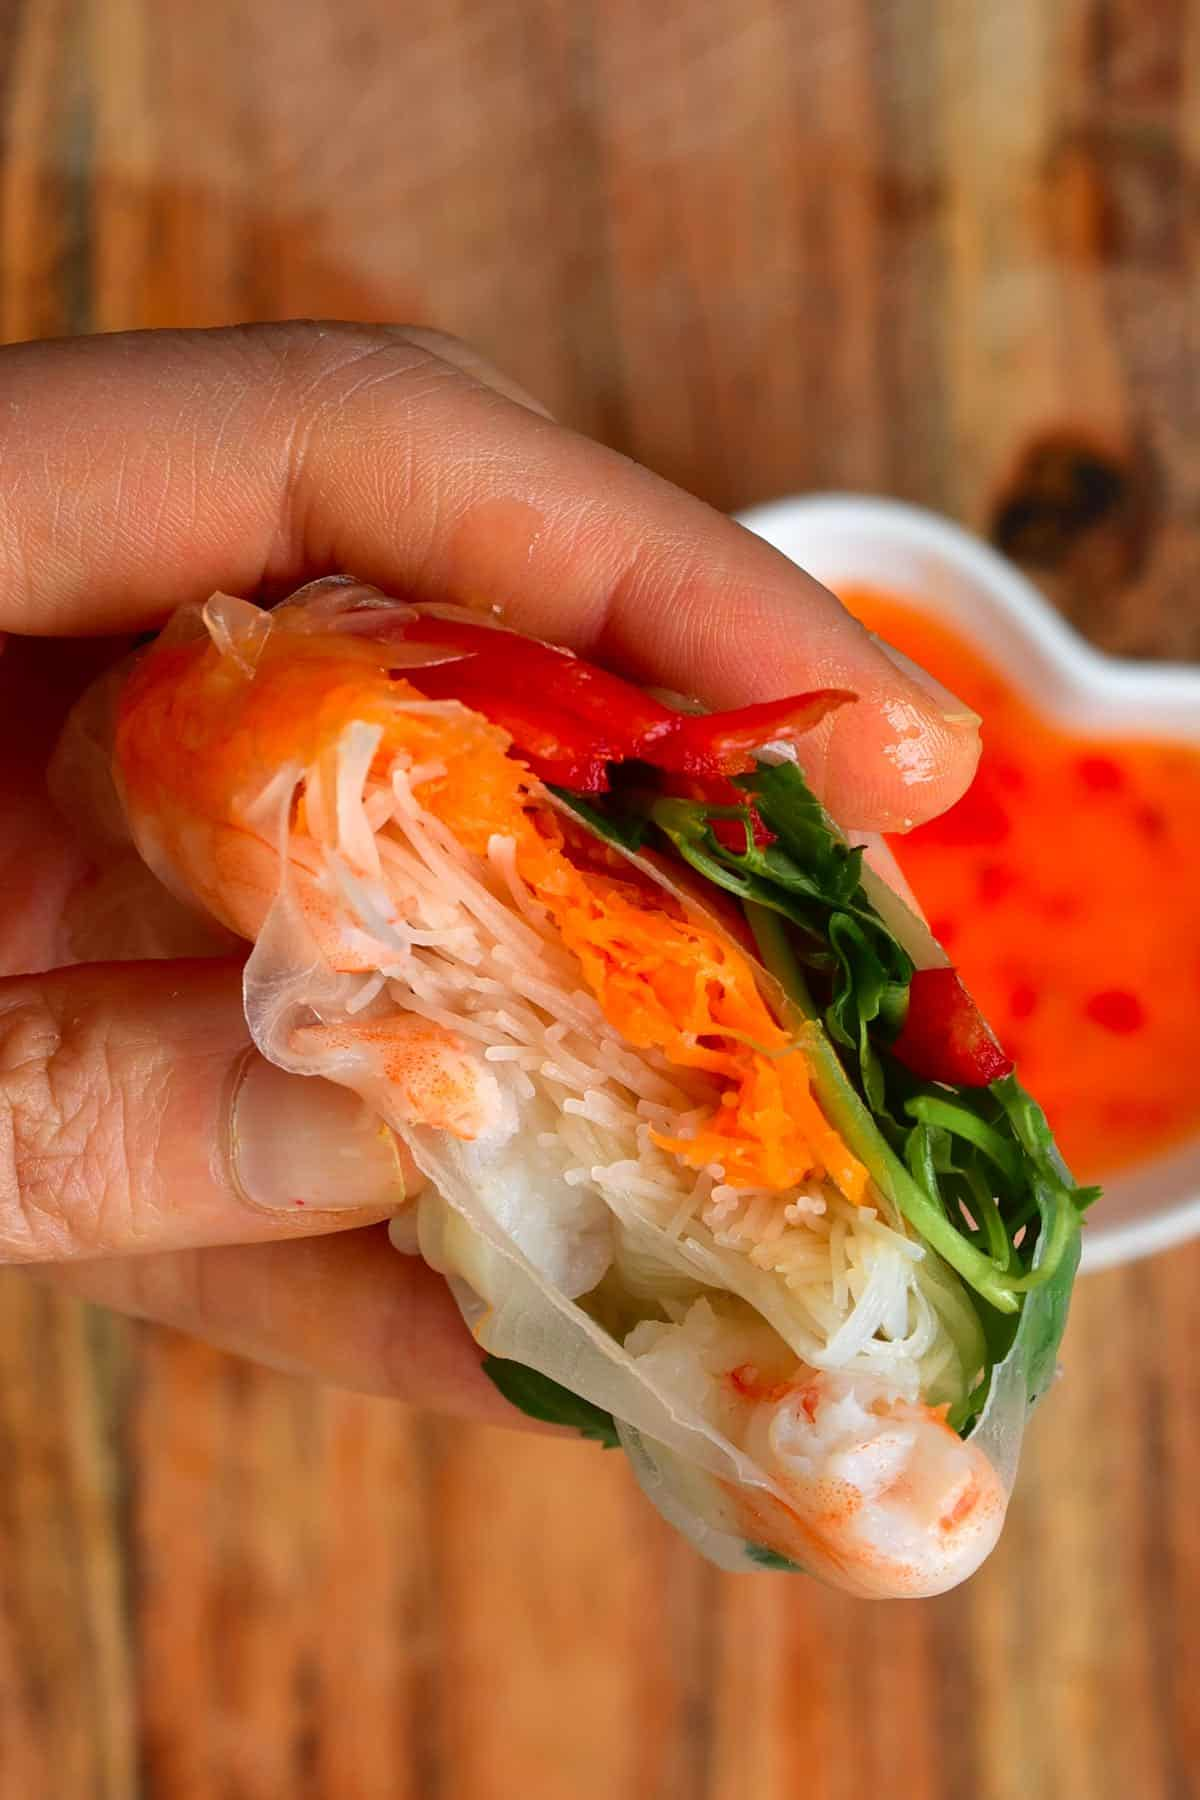 Rice paper wrap with shrimp and carrots